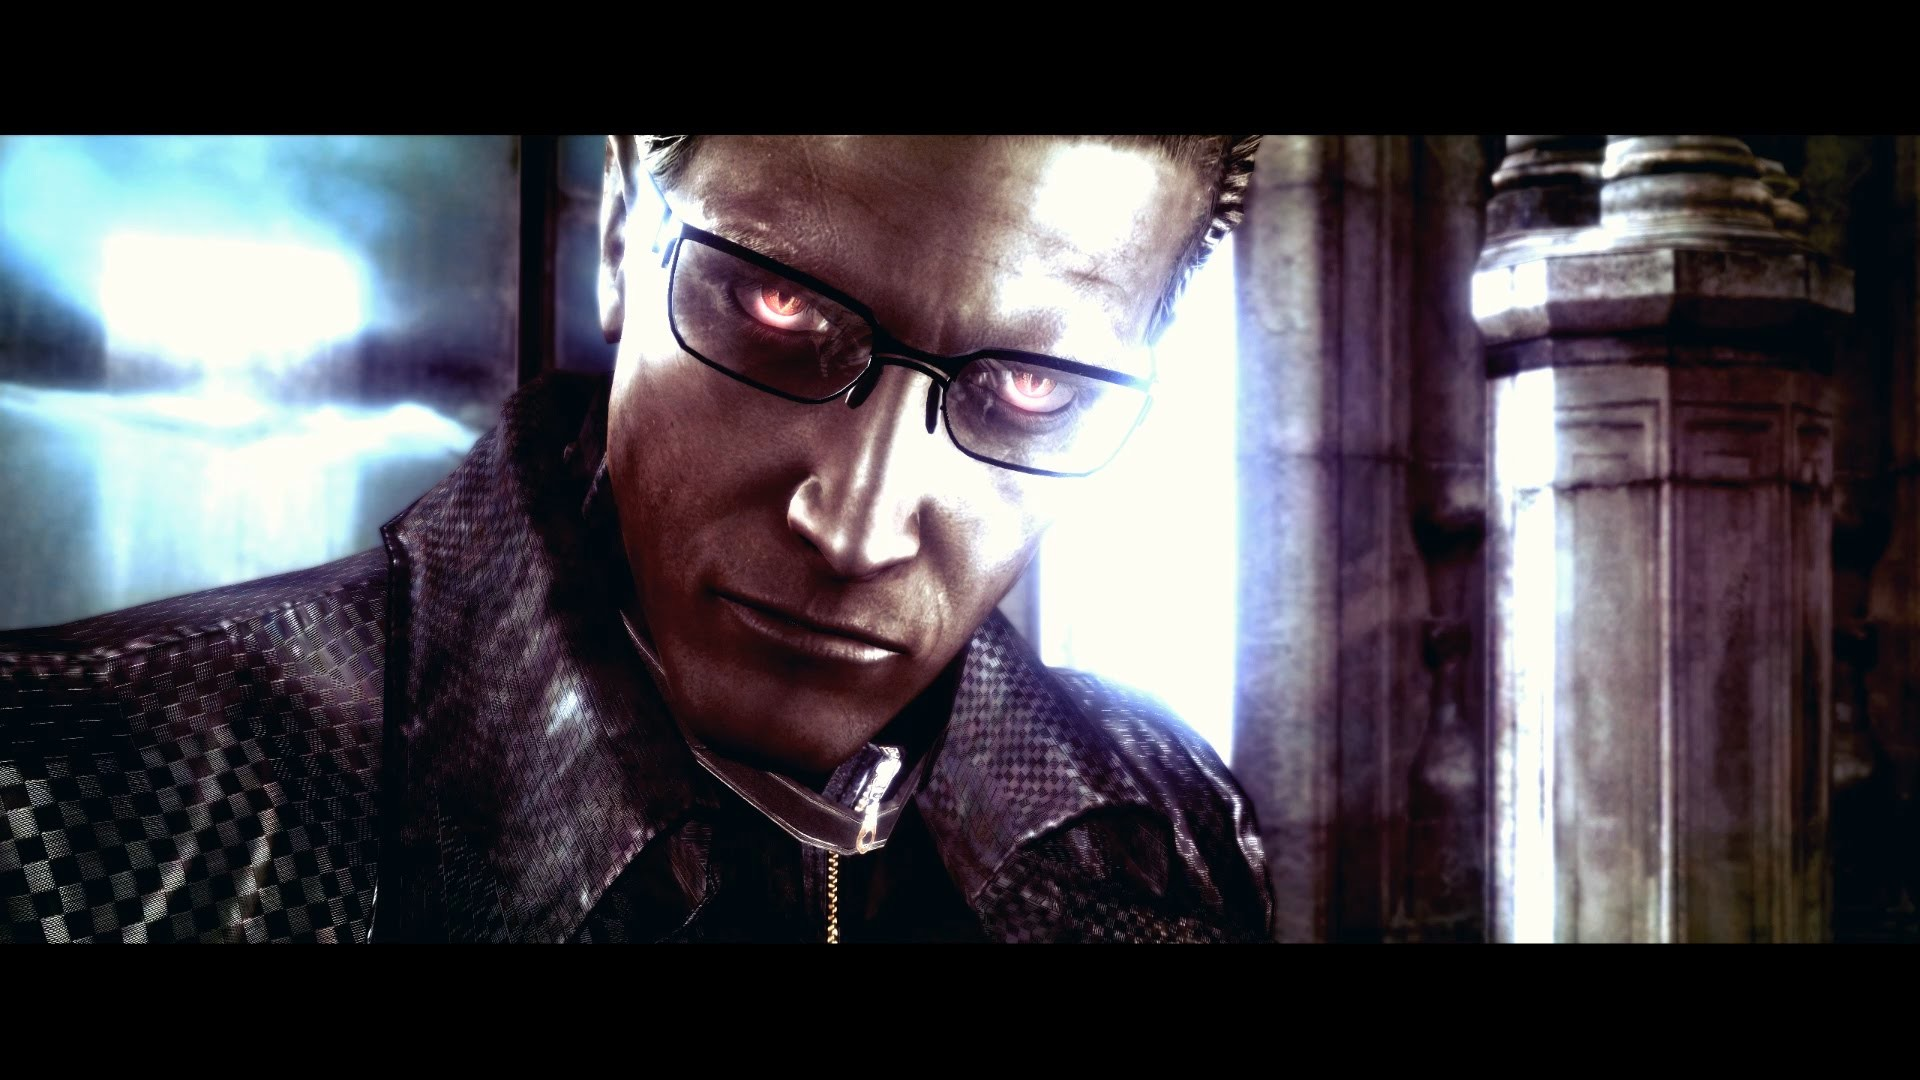 Res: 1920x1080, Resident Evil 5 Lost in Nightmares Wesker Fight